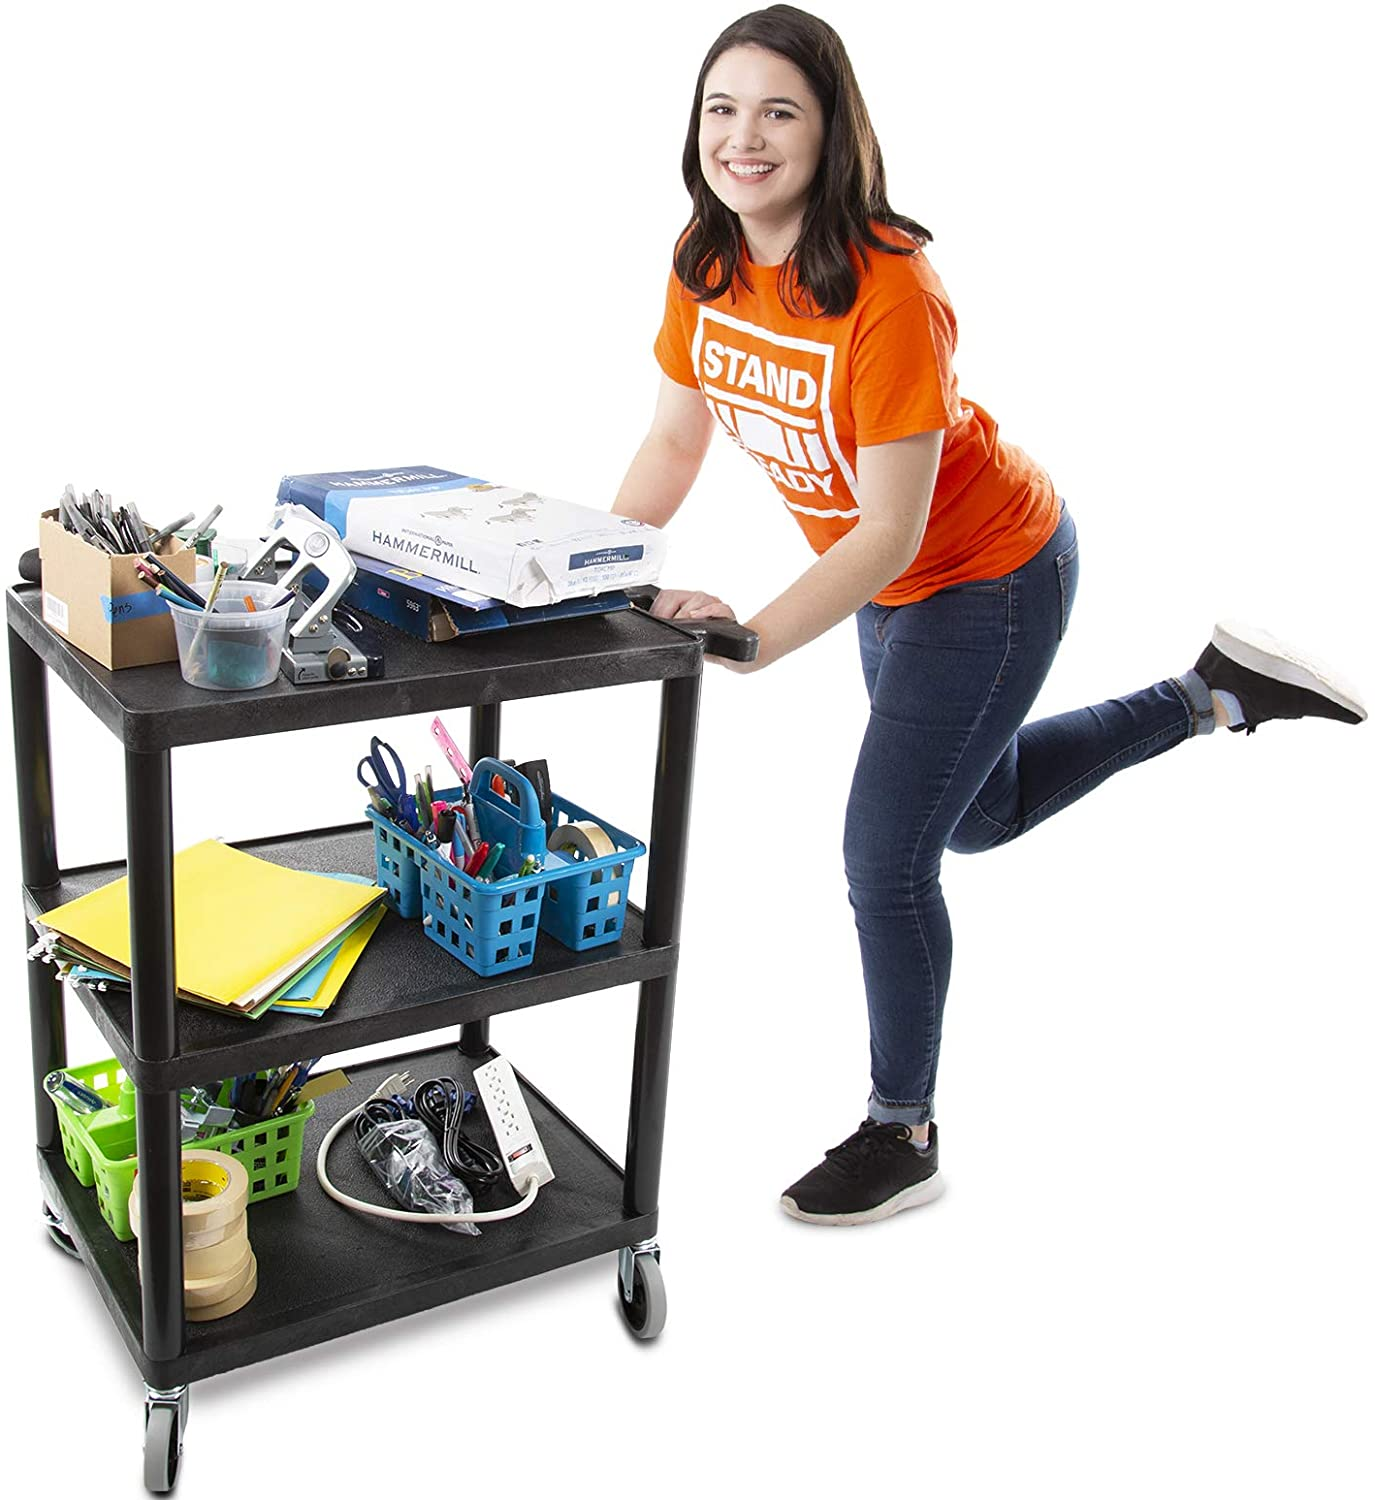 Tubstr Printer Cart Flat Shelf, Compact and Heavy-Duty Storage Cart – Supports up to 300 lbs – Great for Home, Office, Warehouse and More Black 28 in x 18 in